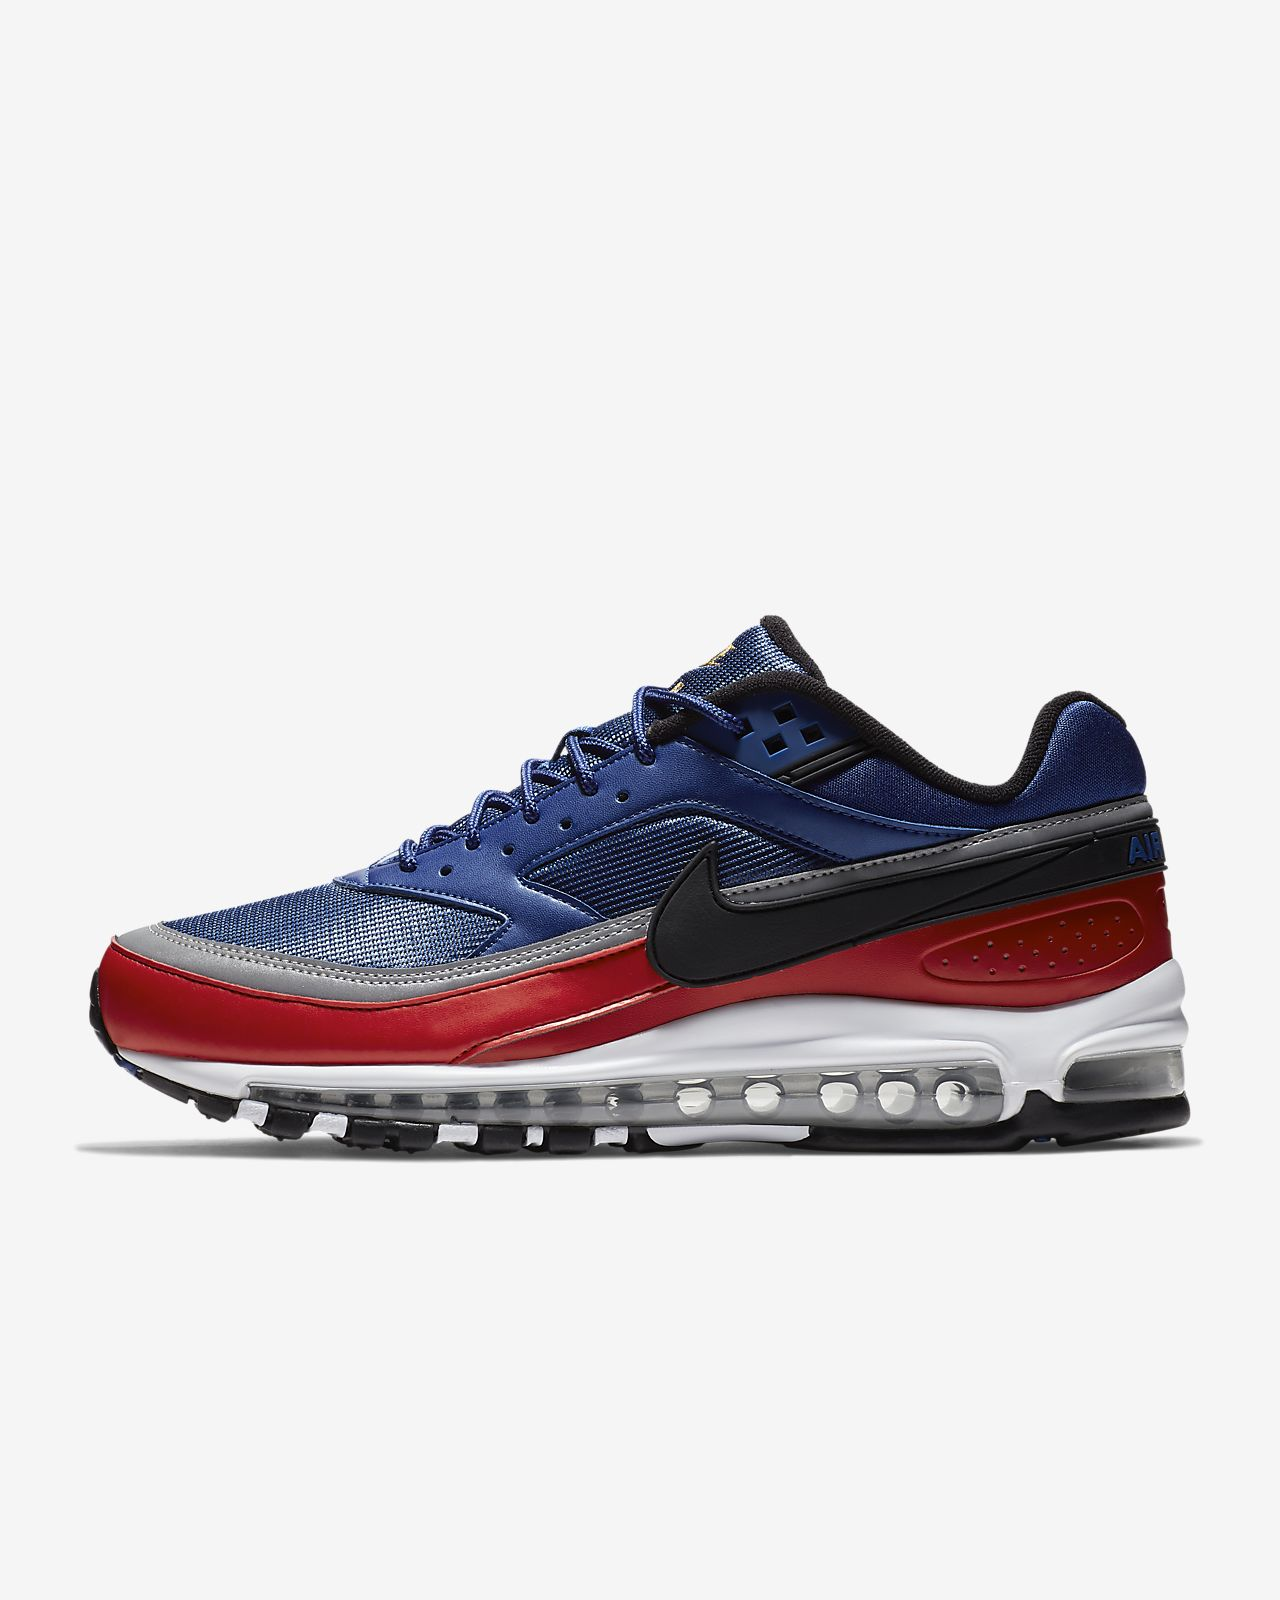 super popular 8478d 5f674 Chaussure Nike Air Max 97/BW pour Homme. Nike.com CA